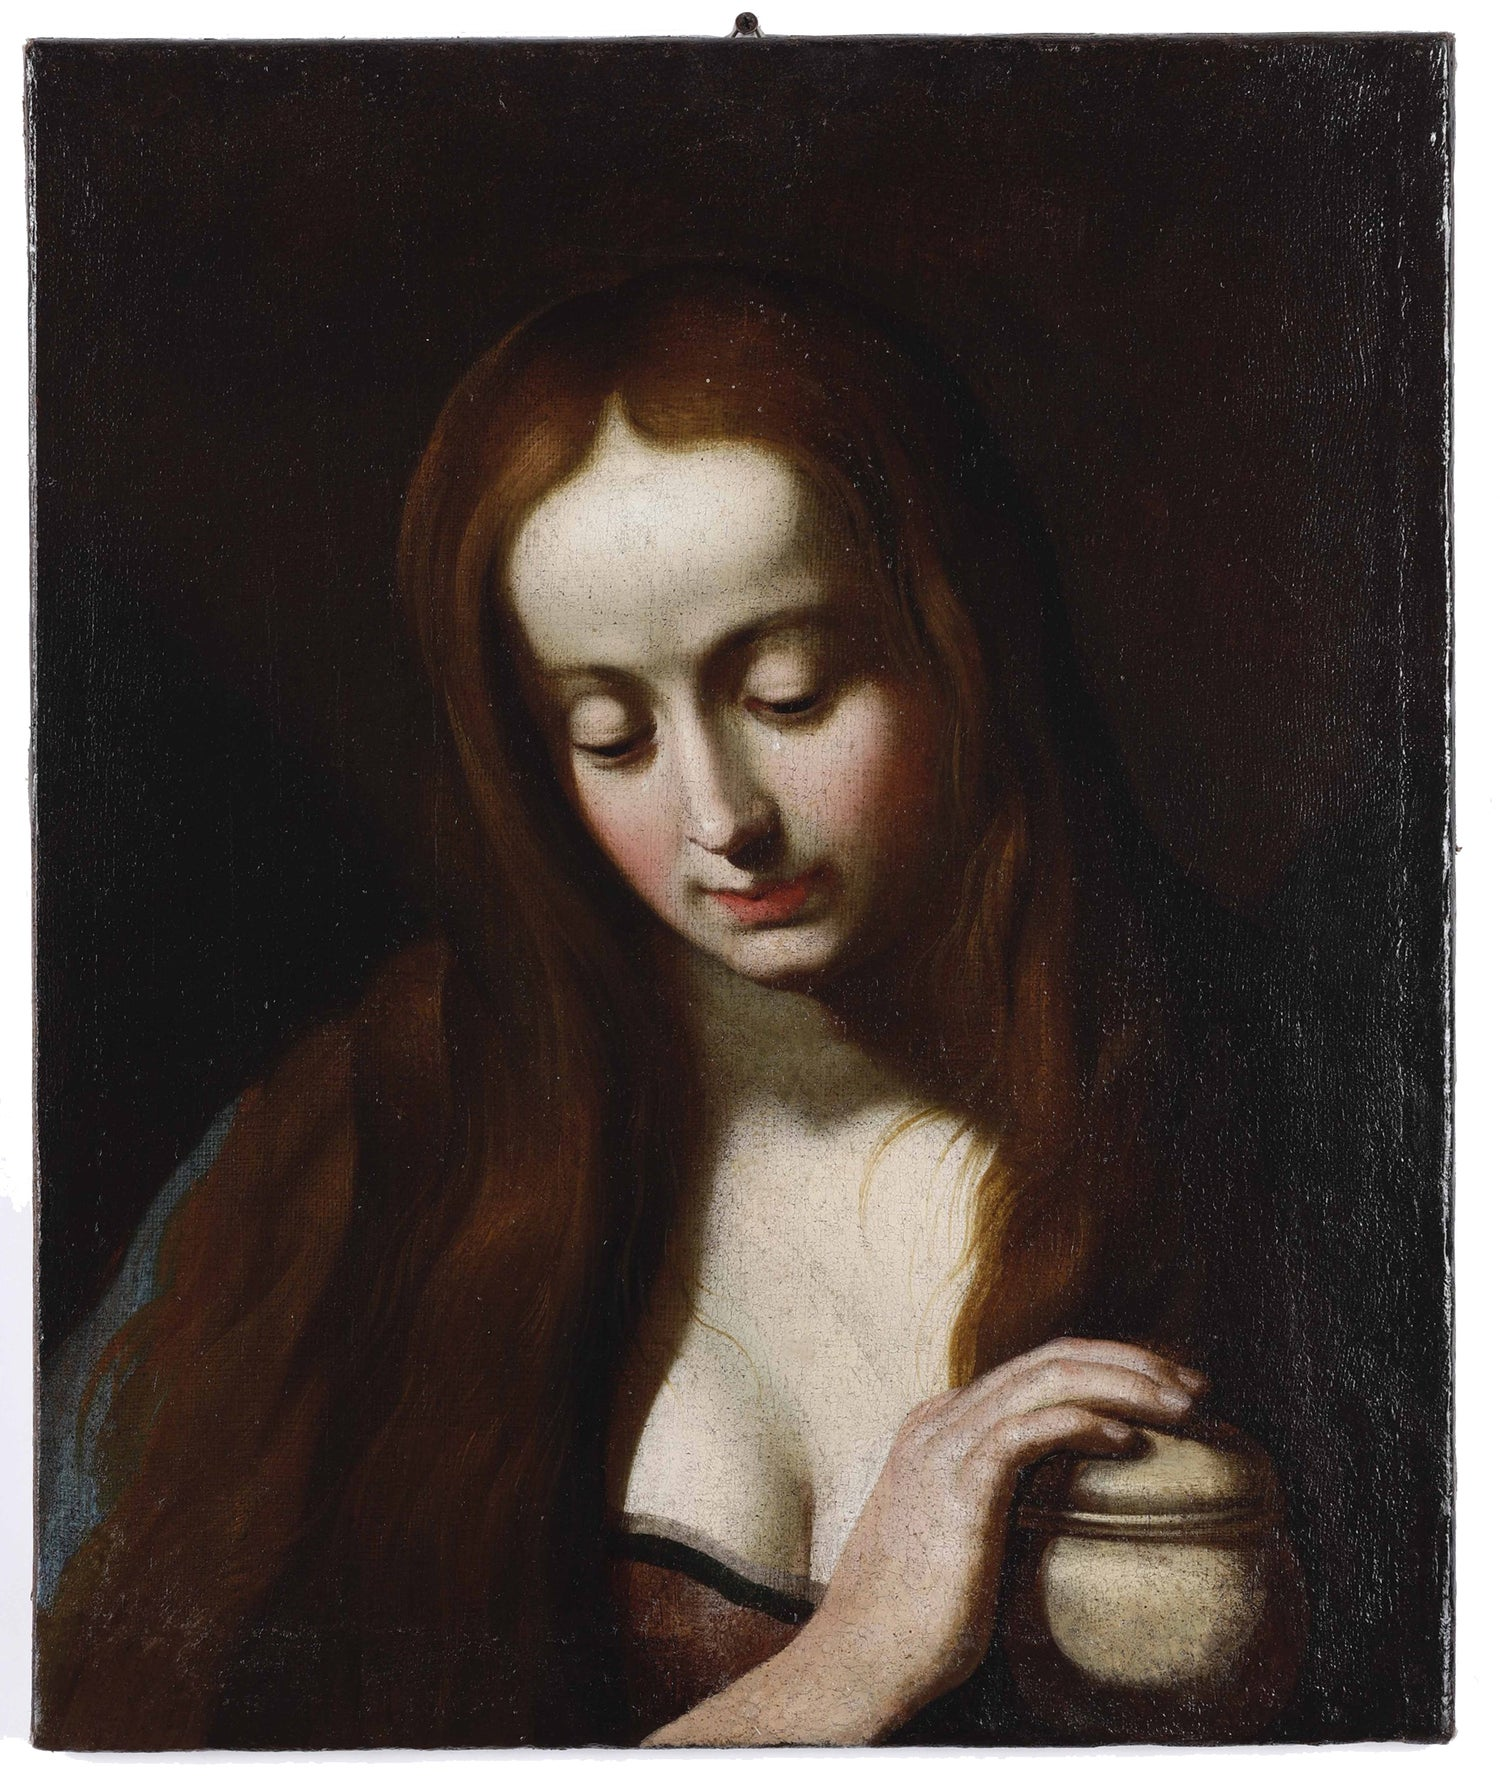 Image of Painting of Mary Magdalene, 17th century, attributed to Giovanni Ricca